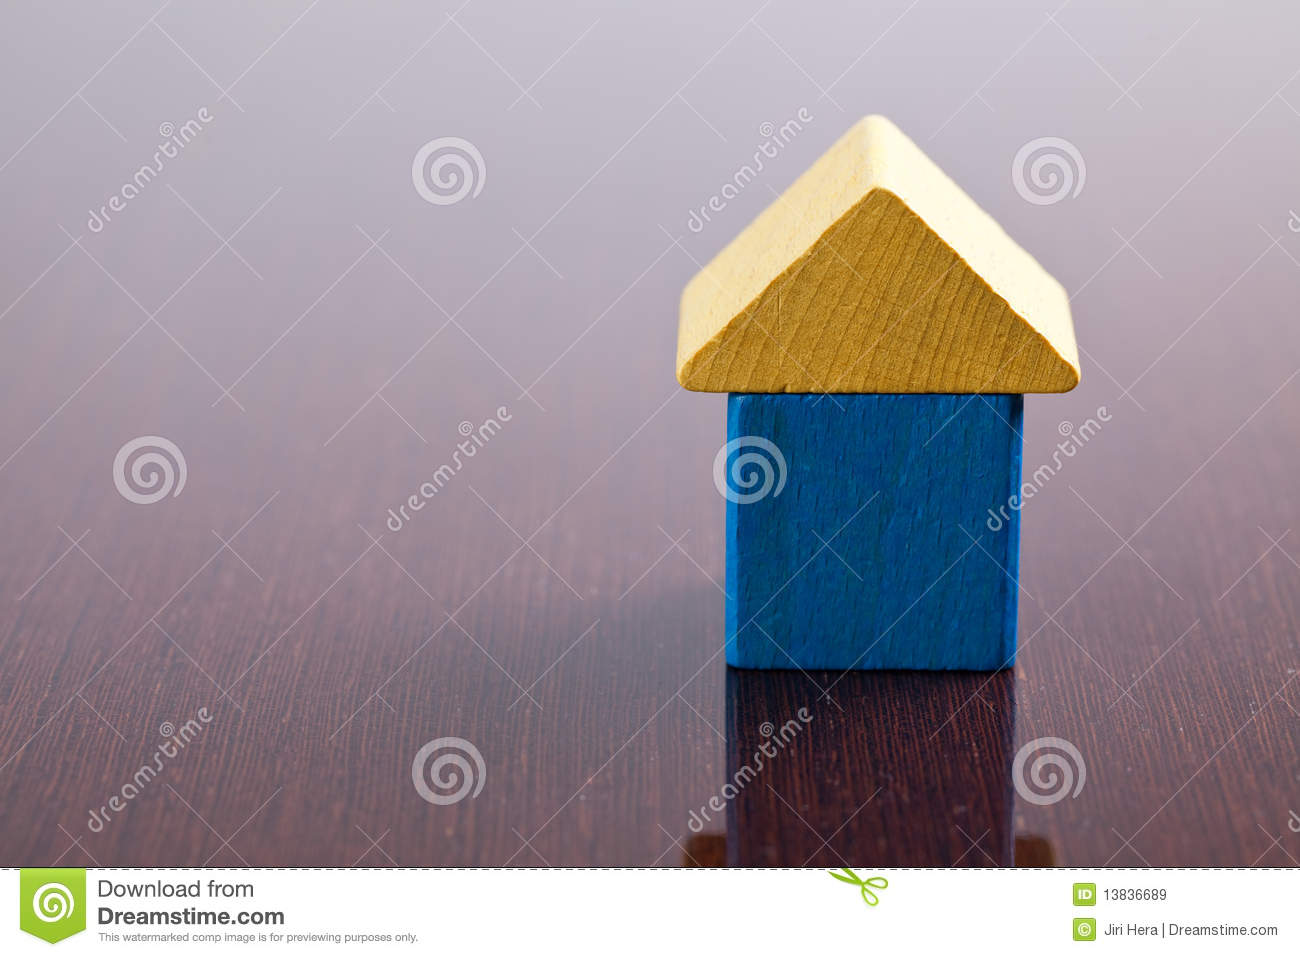 Wooden toy block house on wooden table.